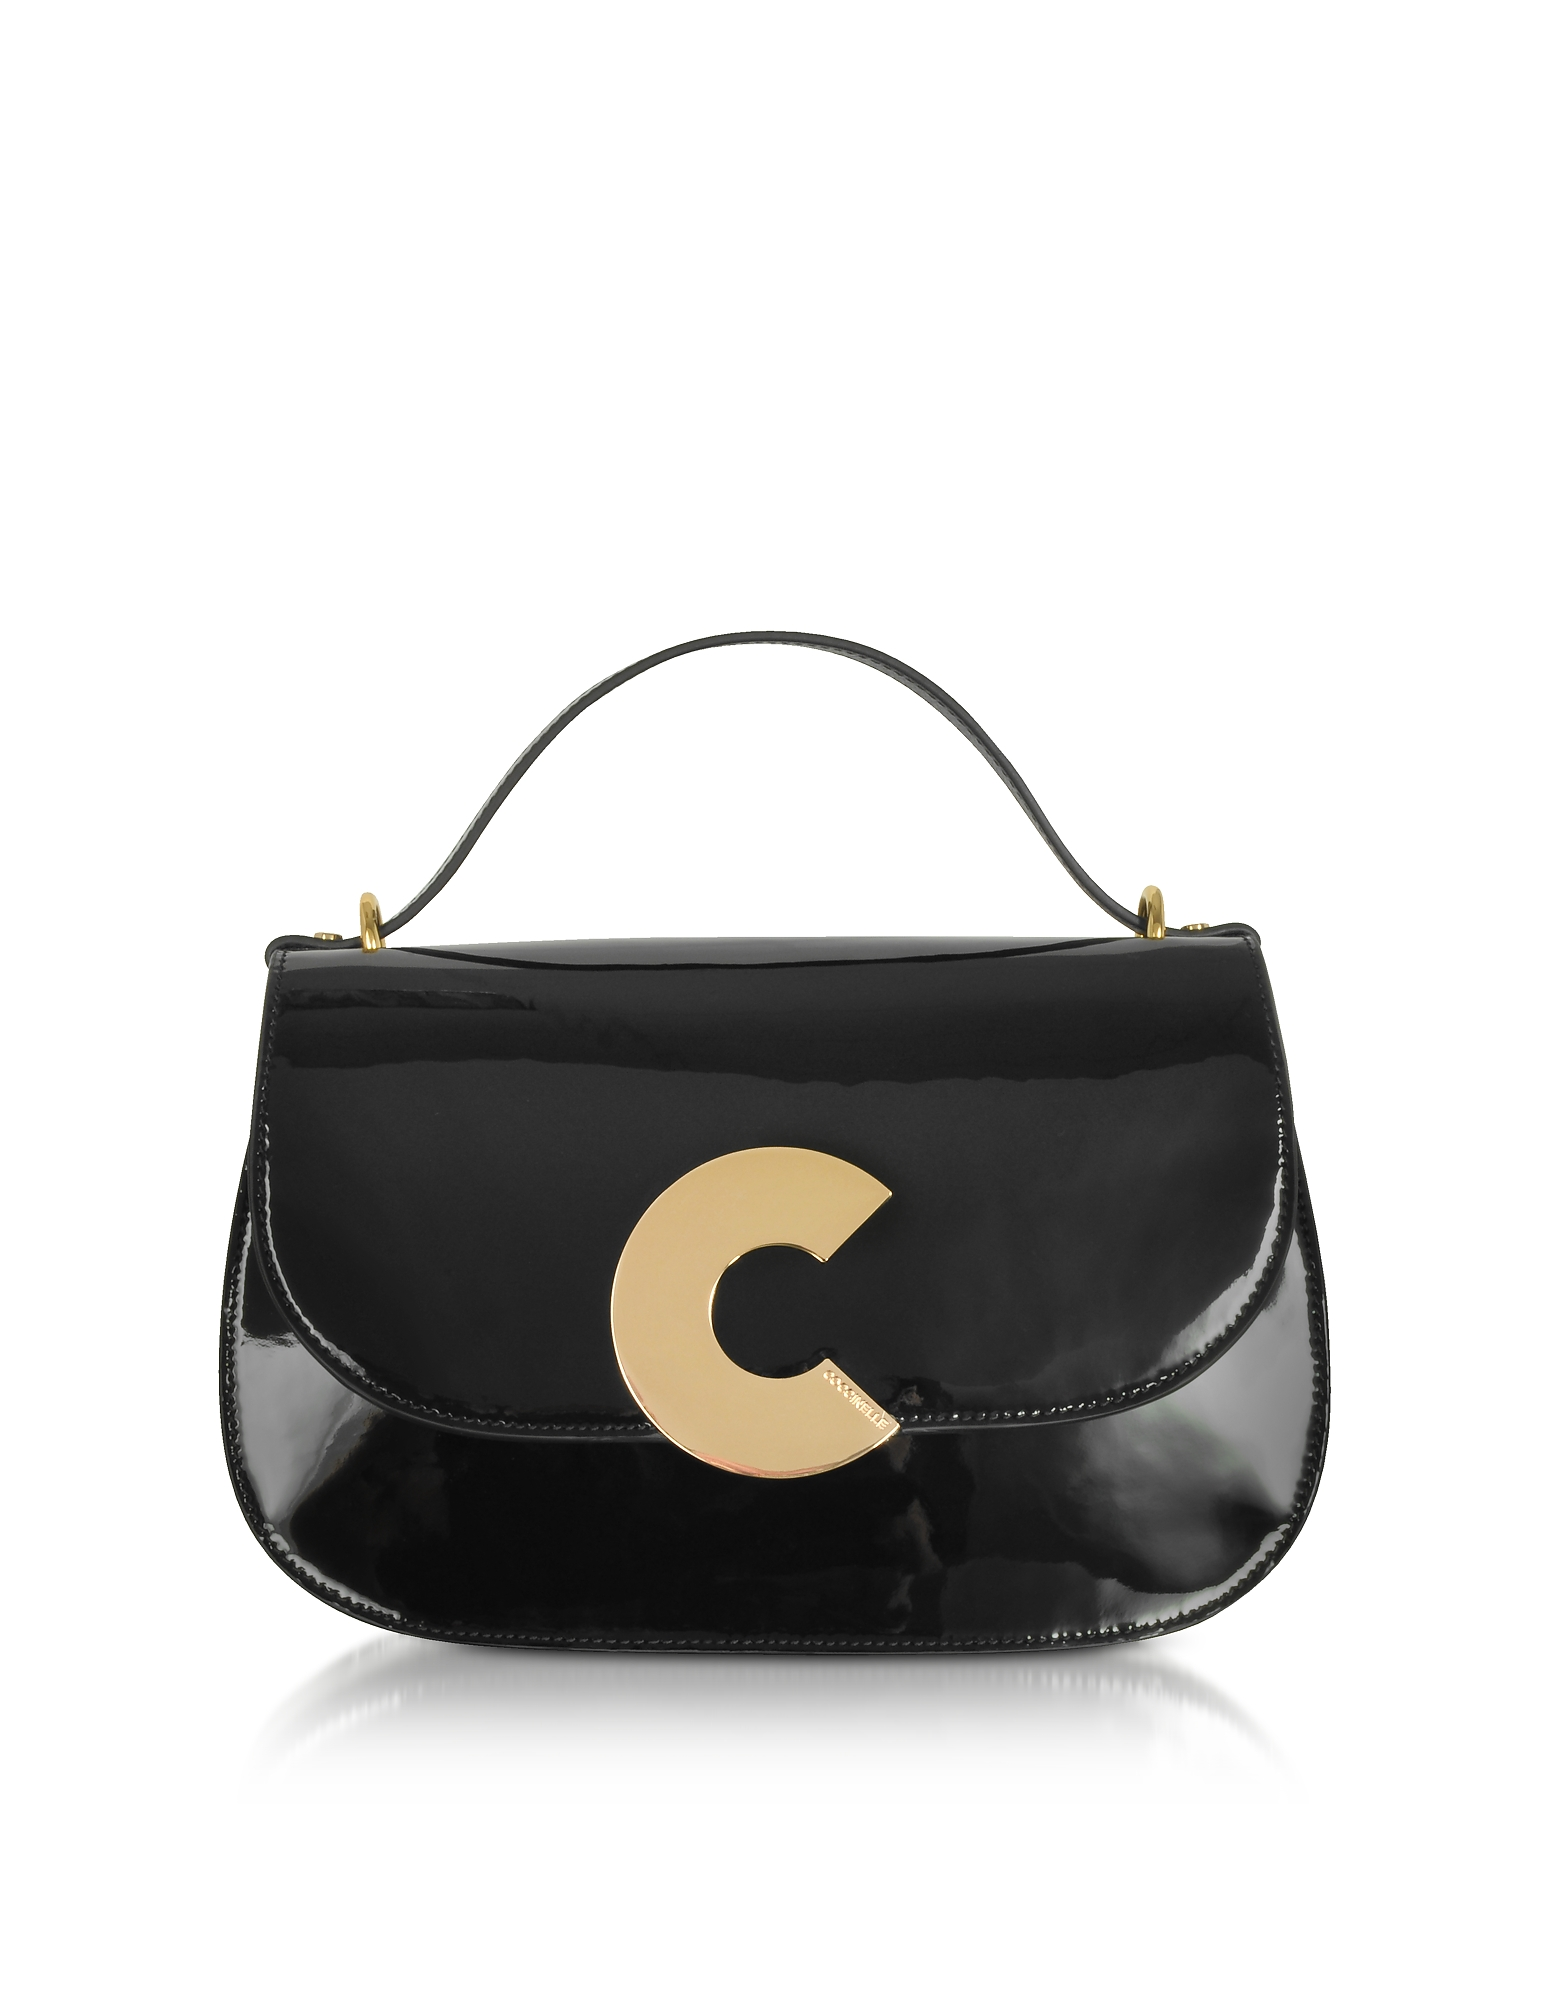 Coccinelle Handbags, Craquante Patent Maxi Leather Satchel Bag